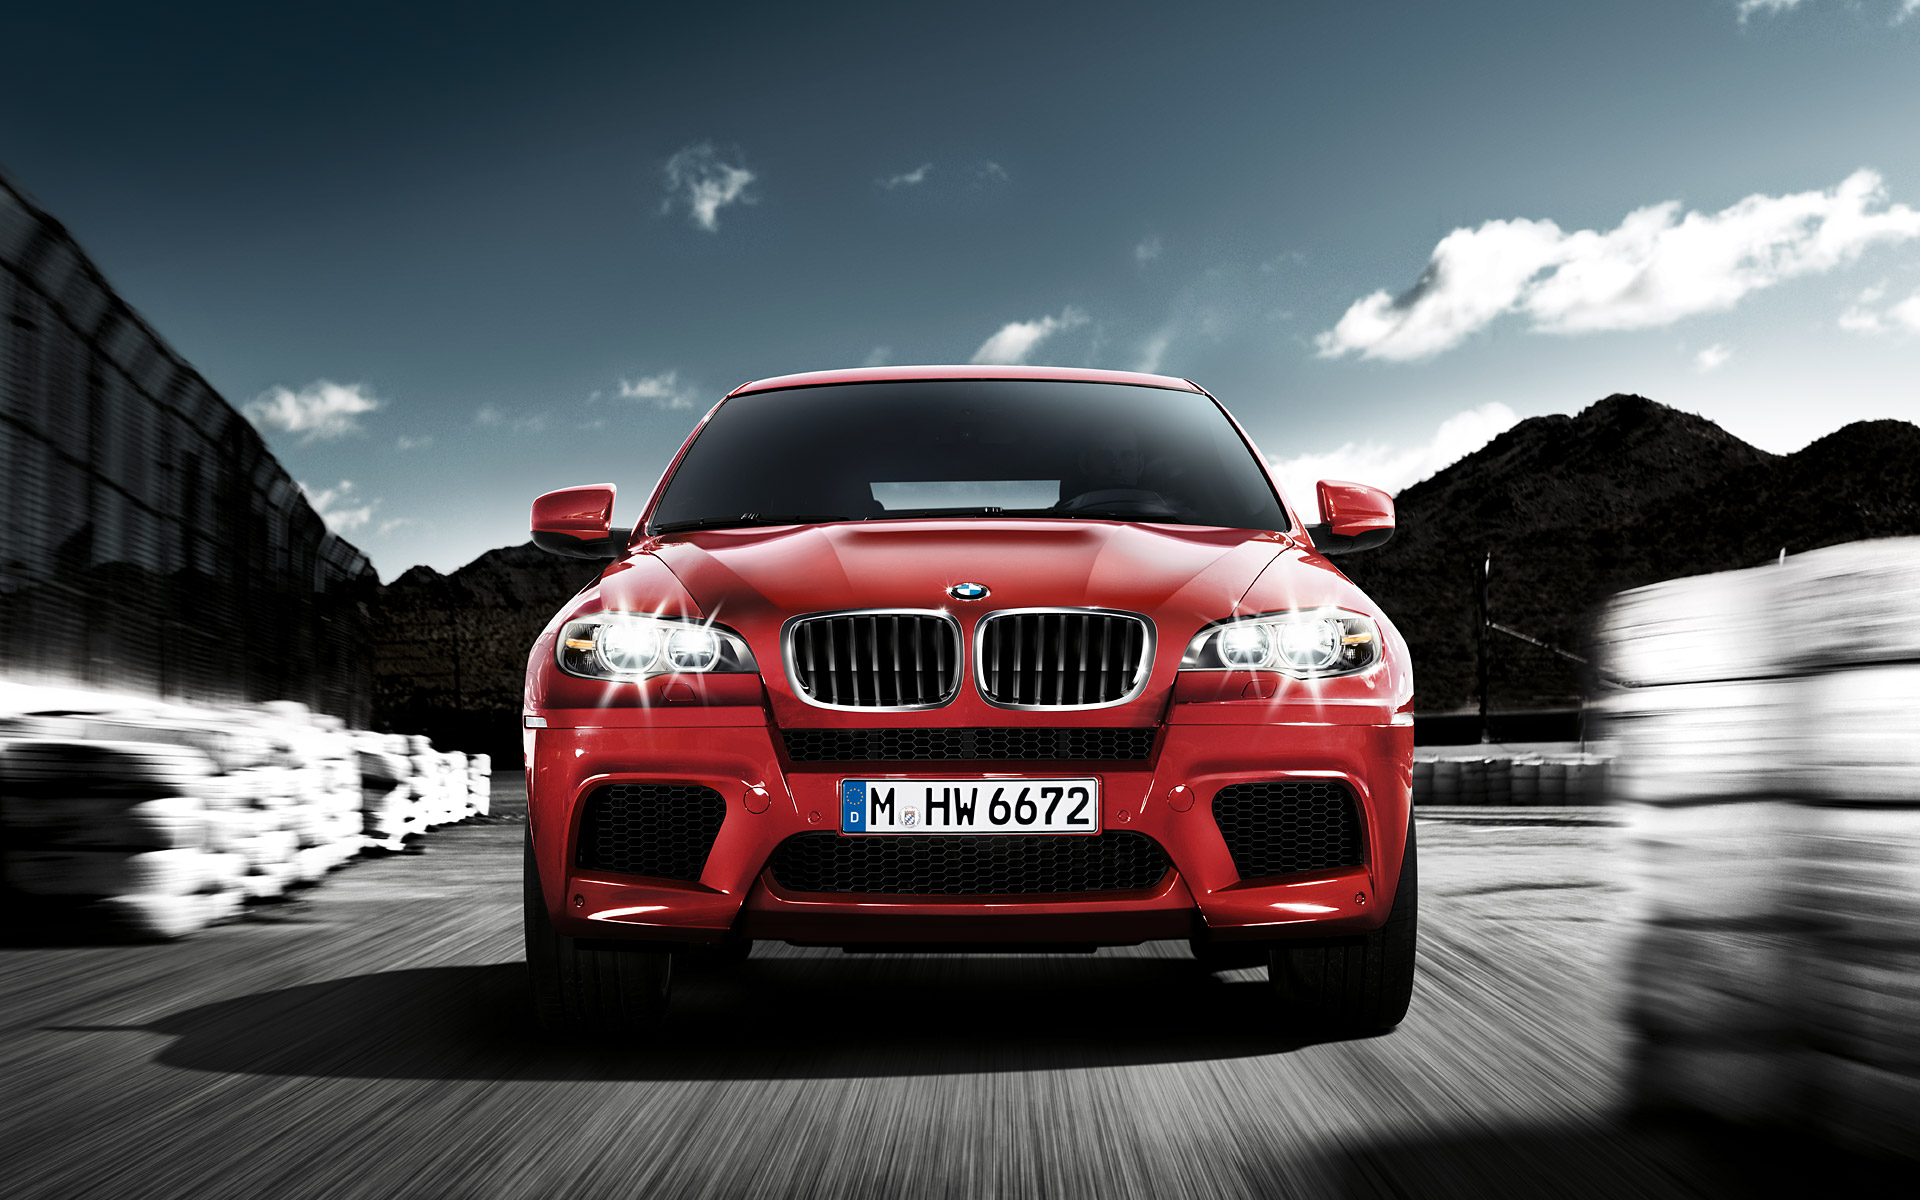 1920x1200 - BMW X6 Wallpapers 31